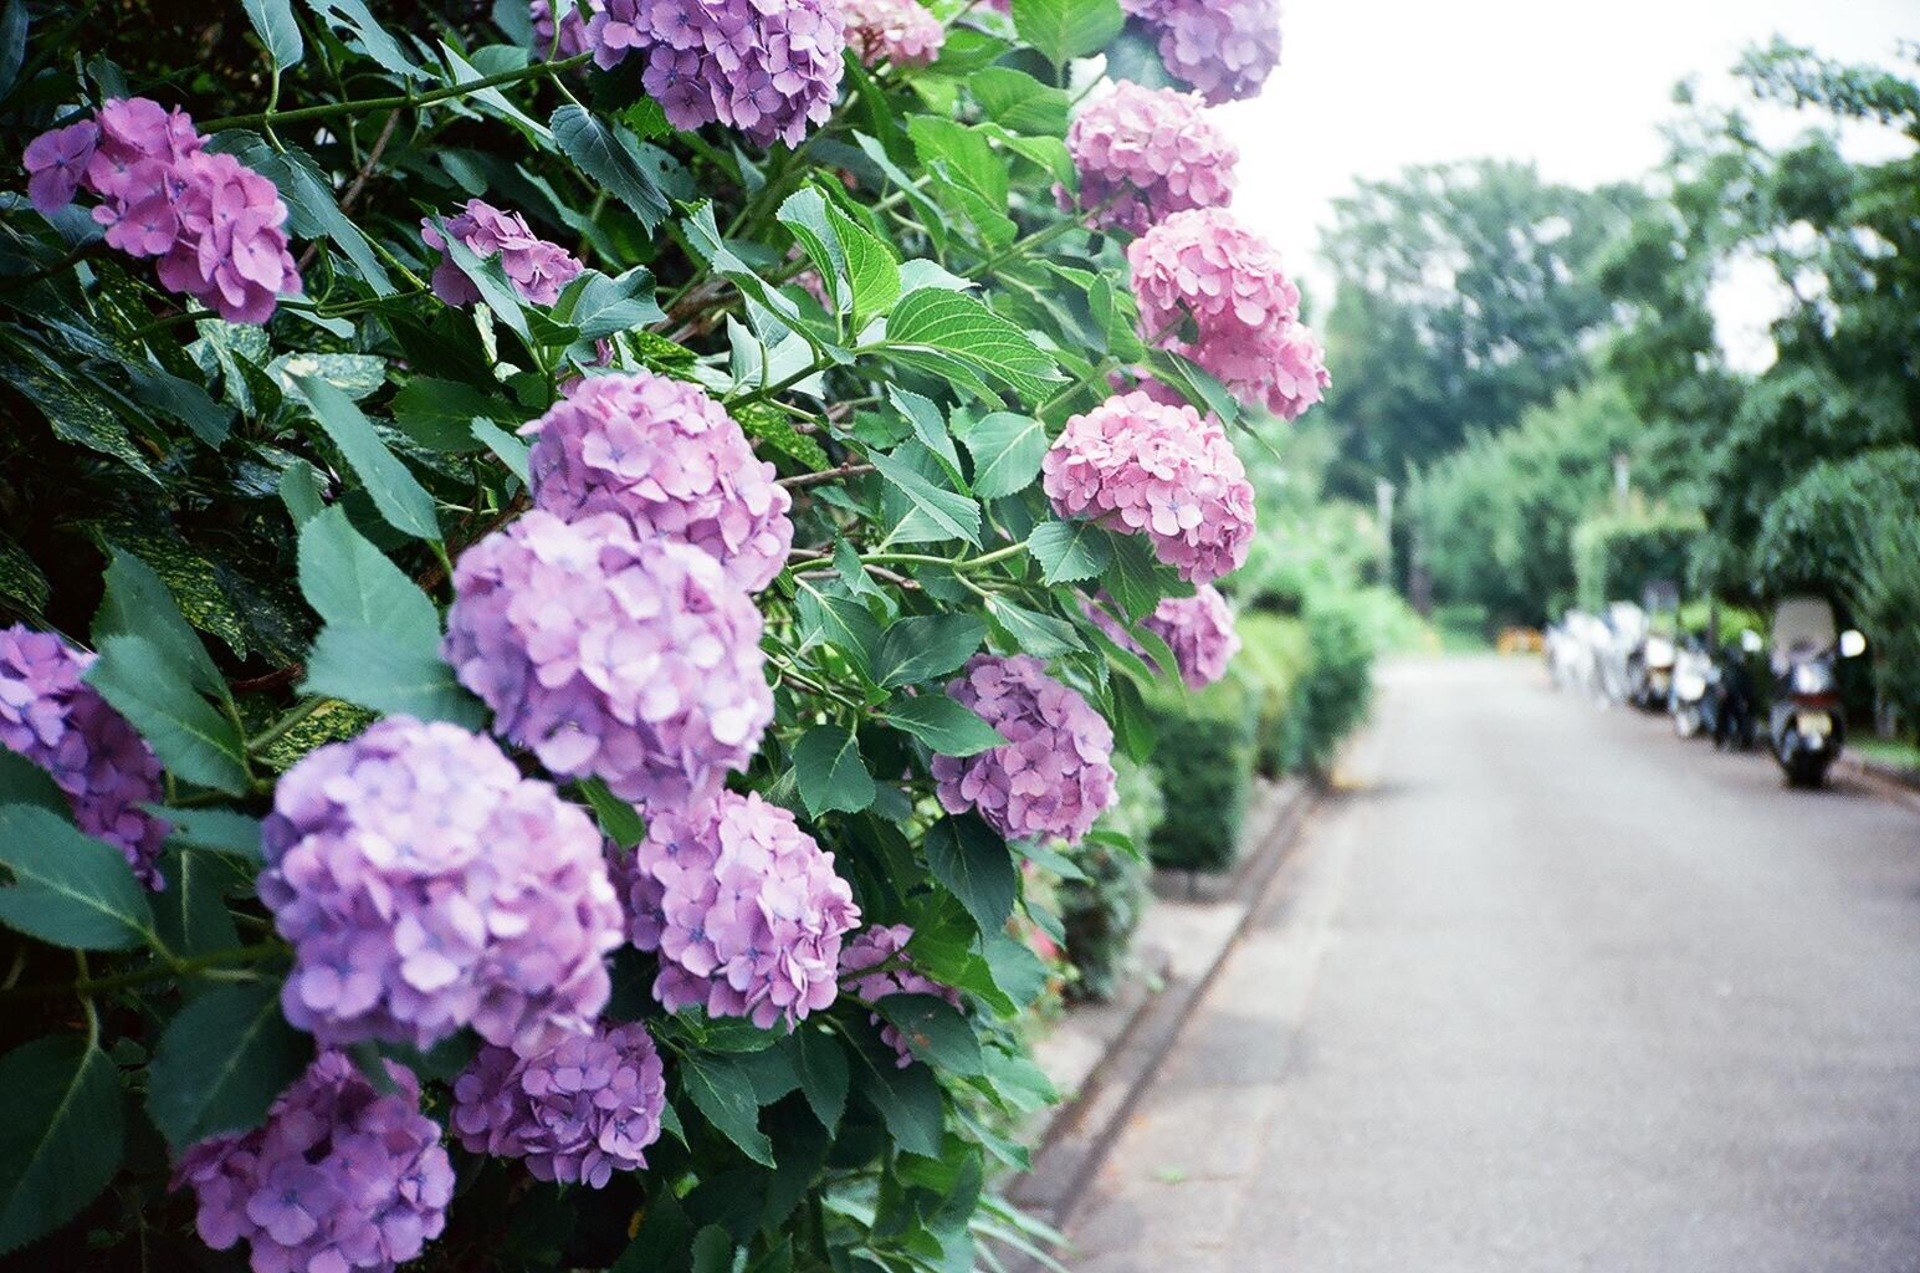 Hydrangea 35mm filmphotography | gato.gordi, bloom, blossom, floral